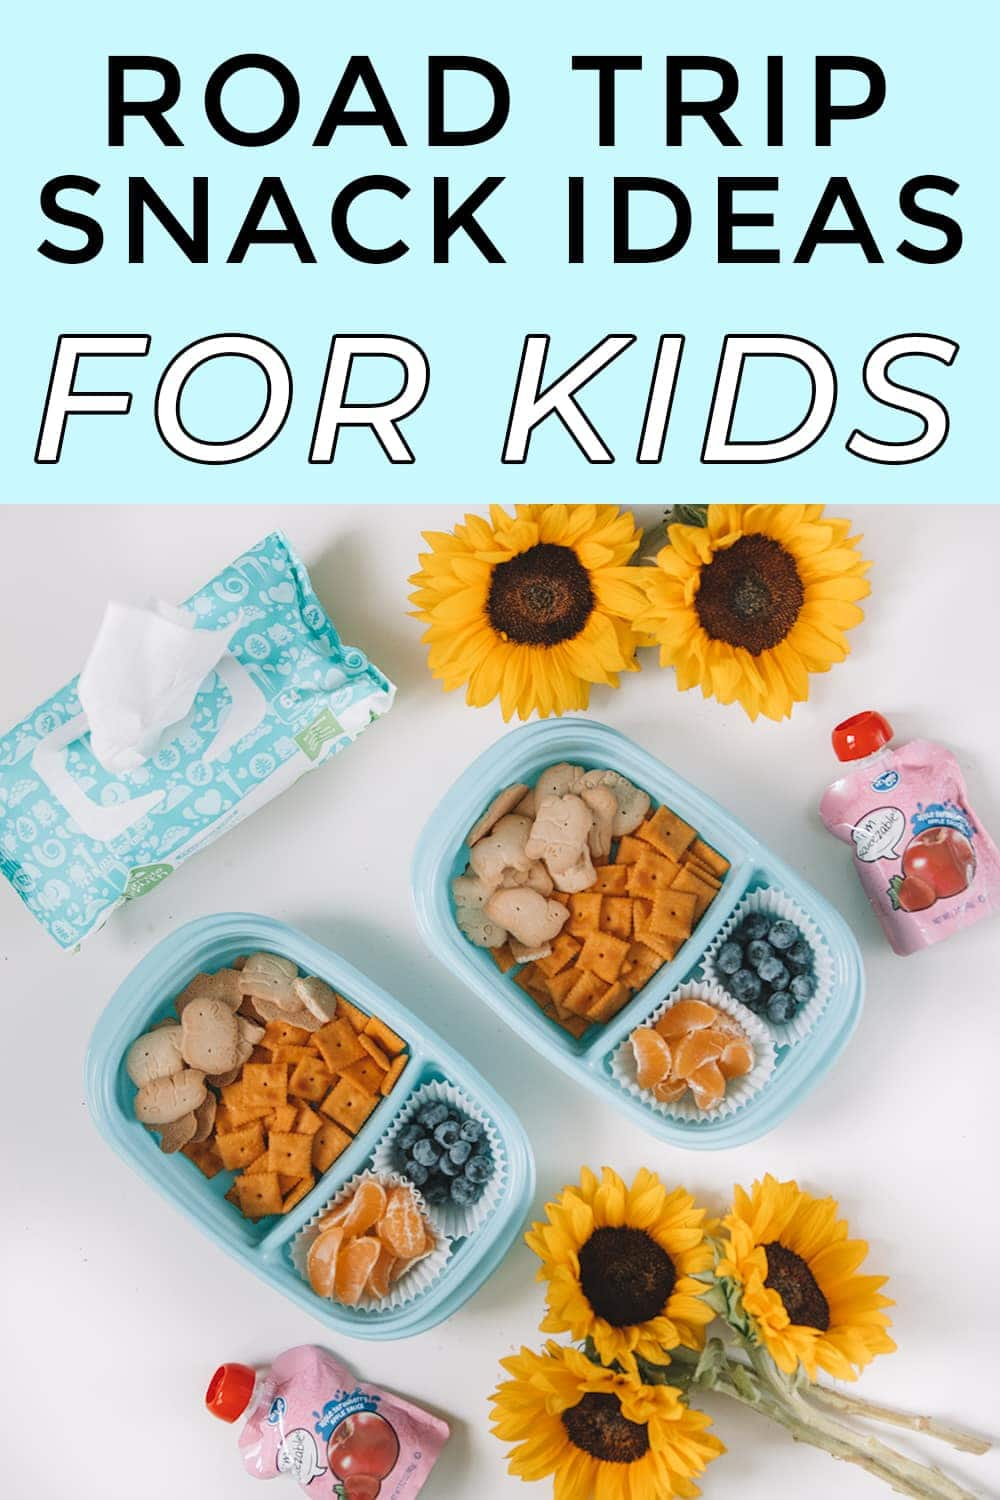 Road trip snack ideas for kids - love the preportioned containers for bento boxes! #snackideas #roadtripsnacks #kidssnackideas #mommyblogger